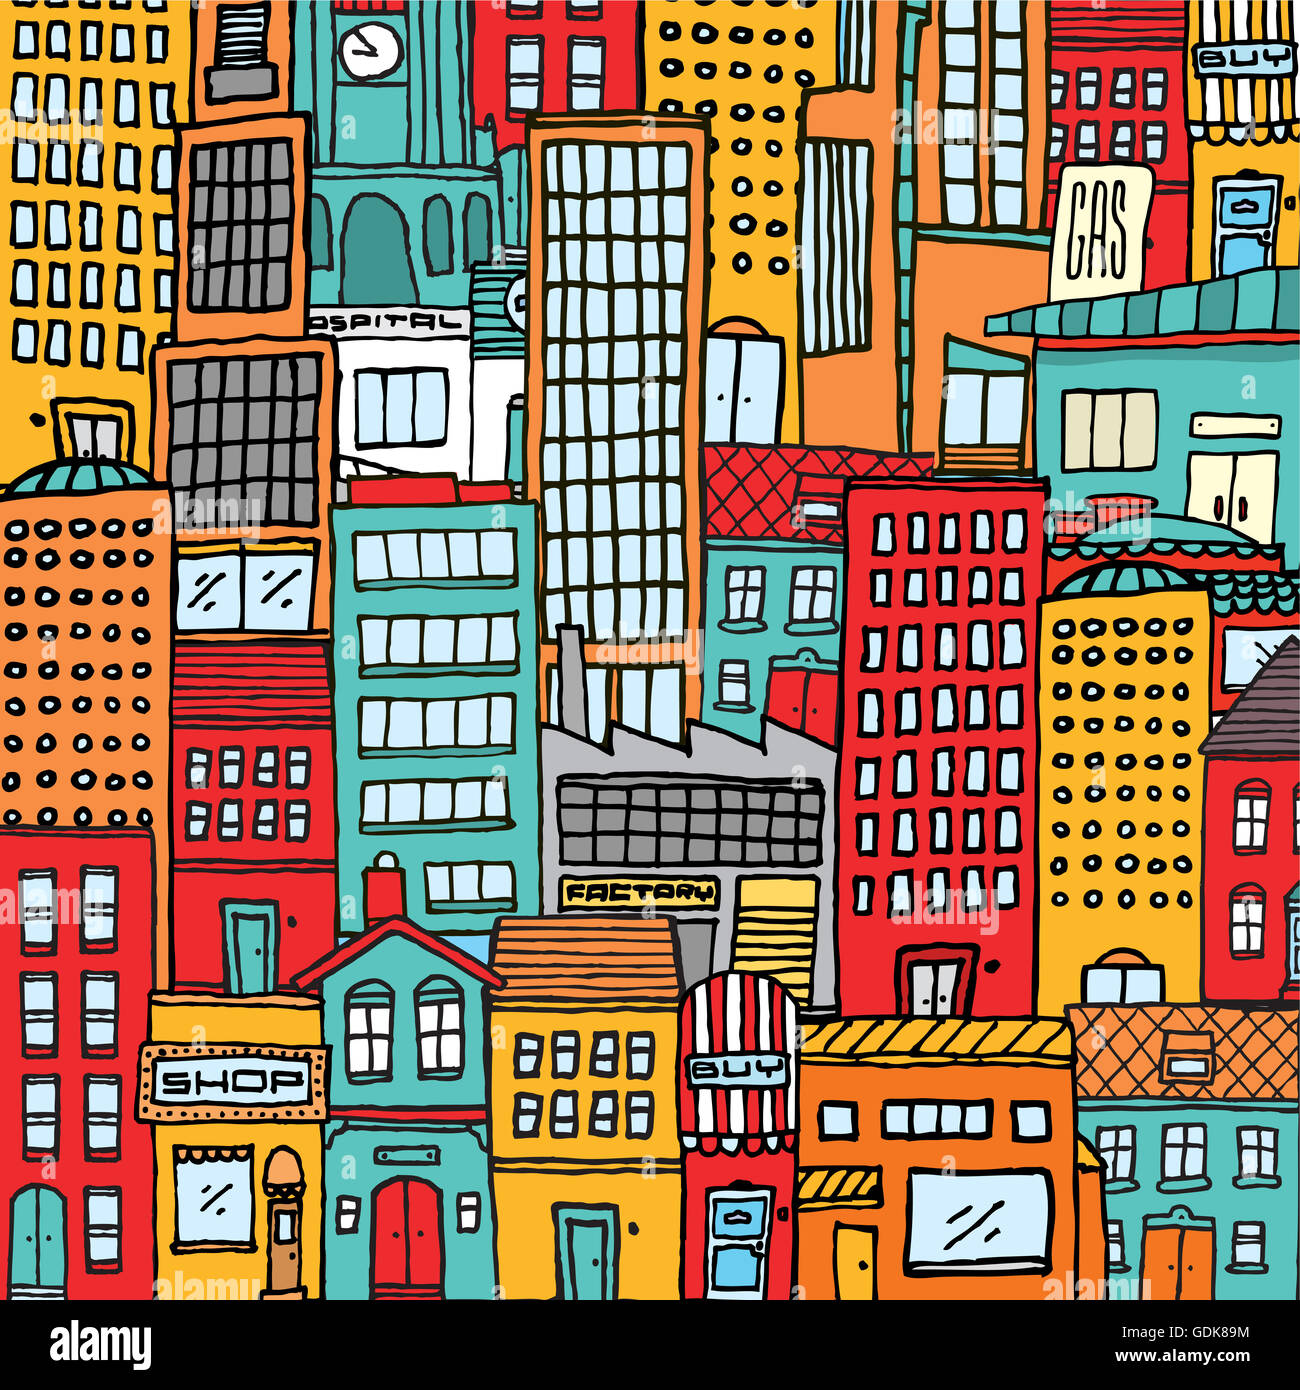 cartoon illustration background of a colorful busy city full with houses and buildings